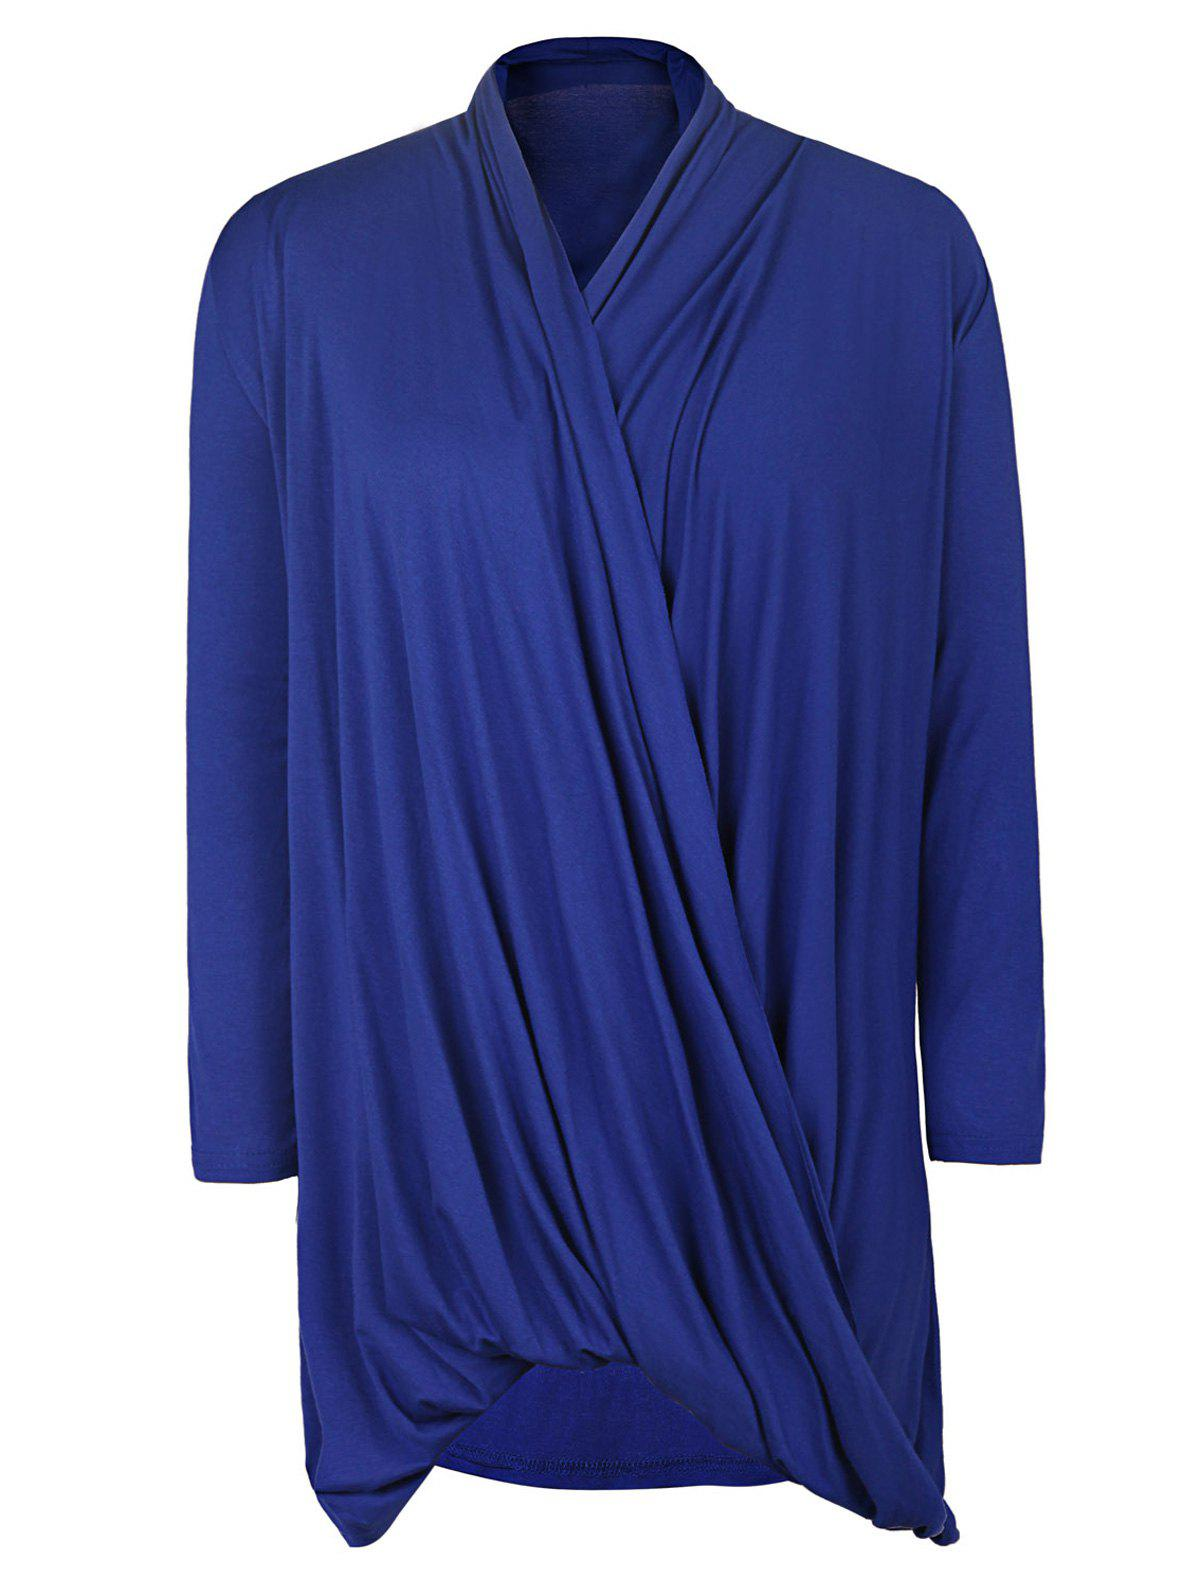 Simple Style Solid Color Cowl Neck 3/4 Sleeve Pleated Loose Blouse For Women michael kors women s 3 4 sleeve cowl neck top shirt